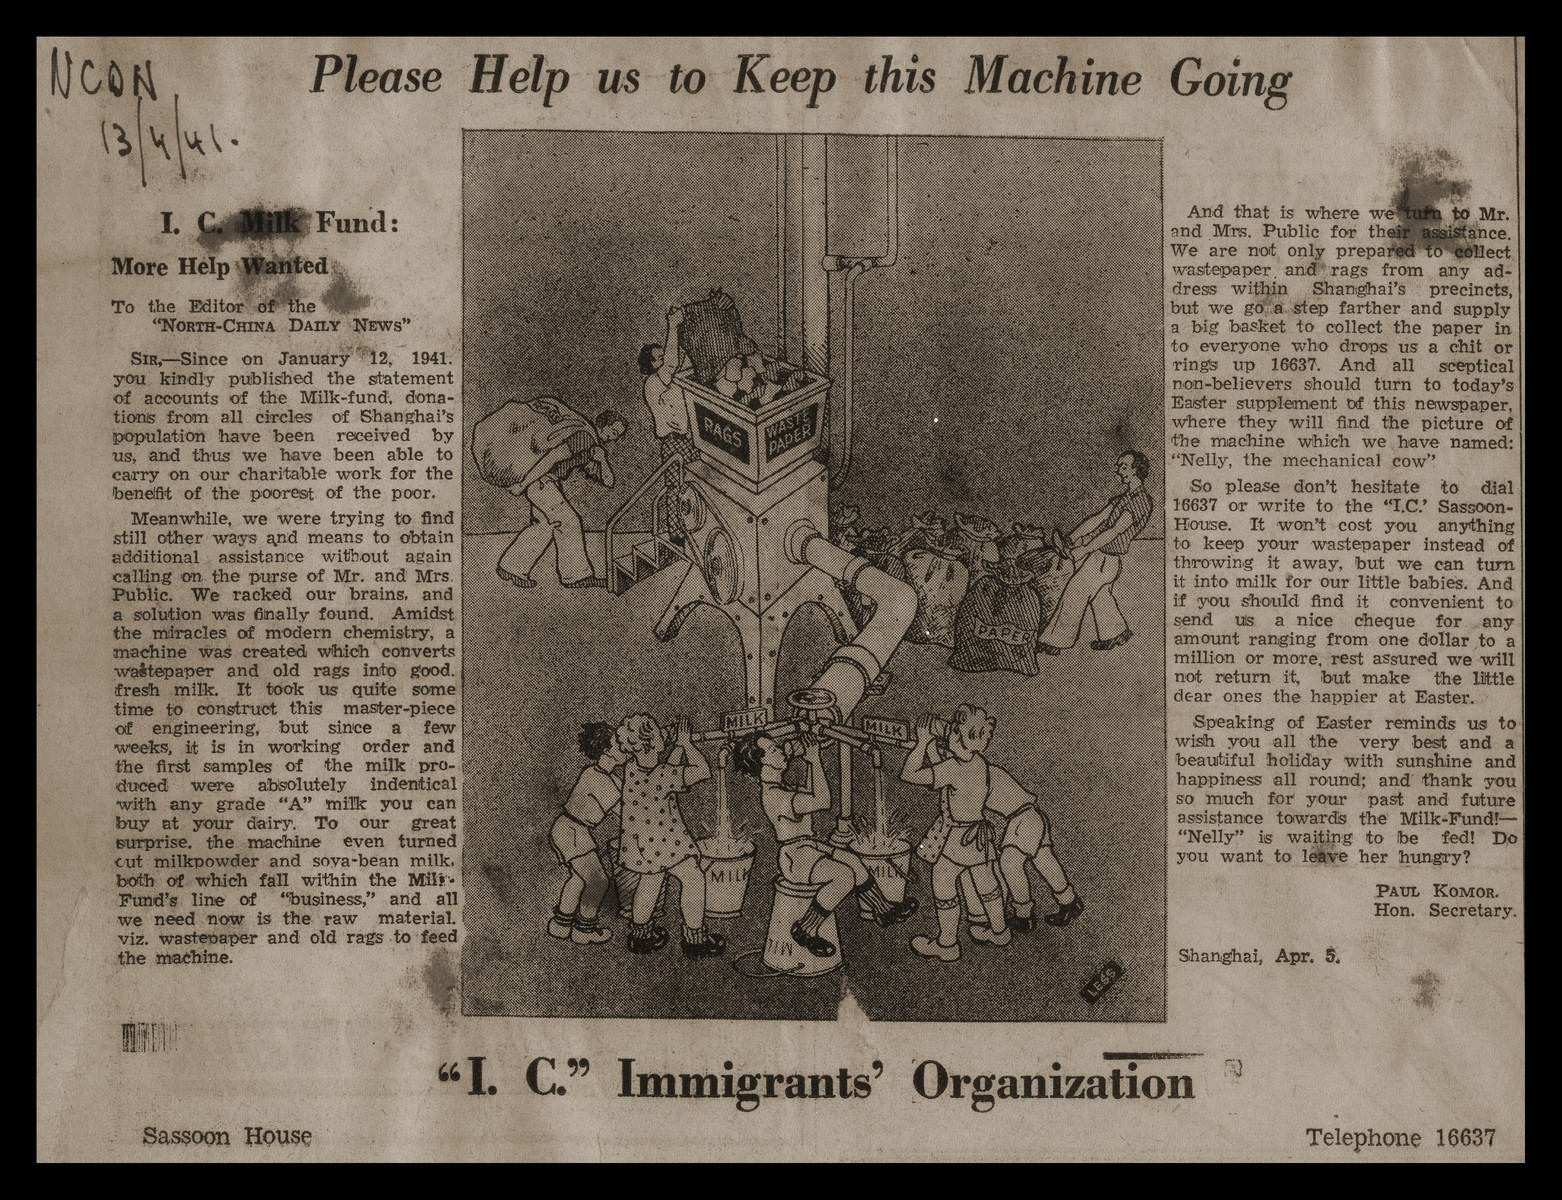 A cartoon and article from the North China Daily News soliciting donations for the International Committee for the Organization of European Immigrants in China.